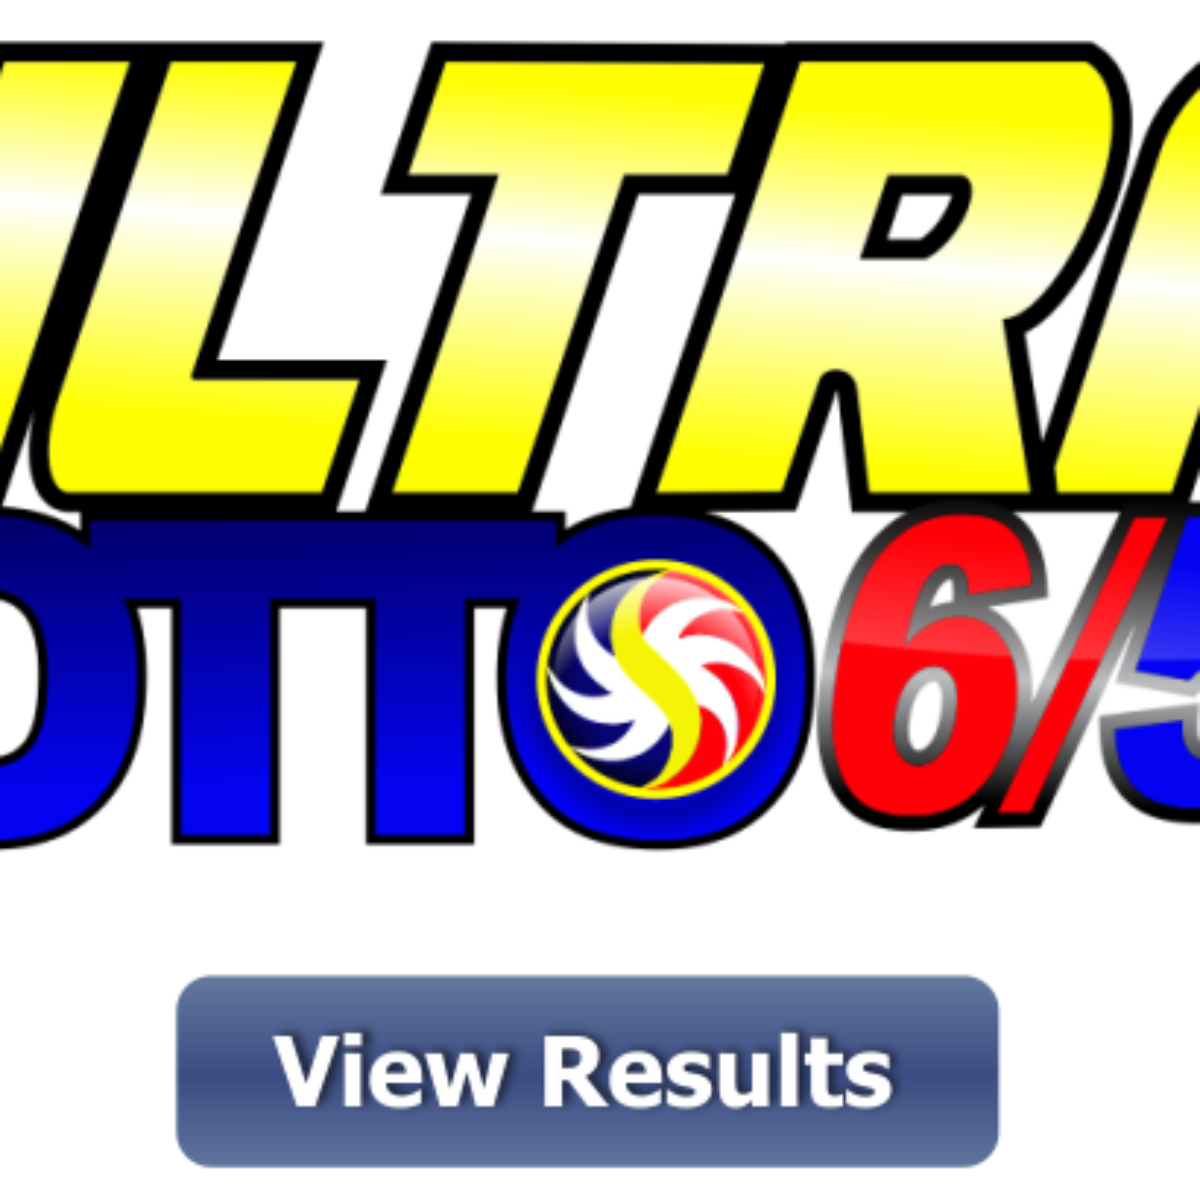 6/58 LOTTO RESULT December 2, 2018.